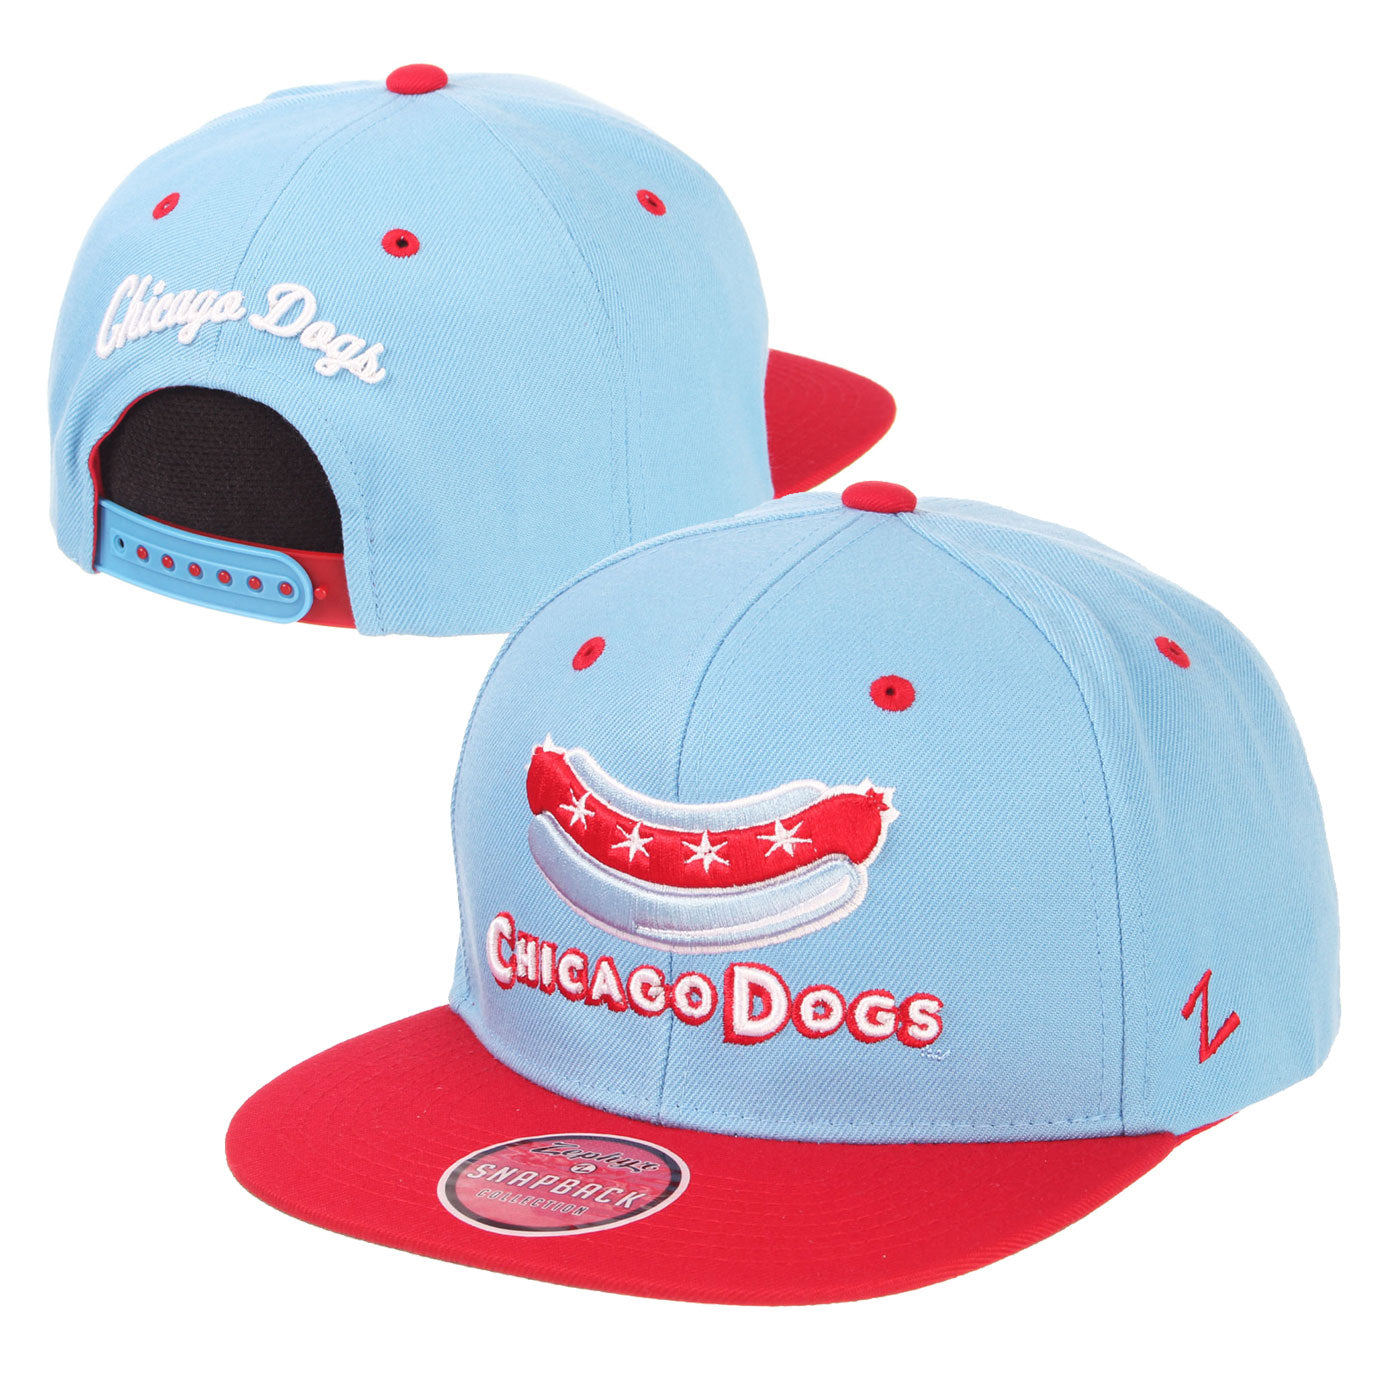 Chicago Dogs Zephyr Secondary Logo Flat Brim Adjustable Snapback Hat - Light Blue/Red - Chicago Dogs Team Store